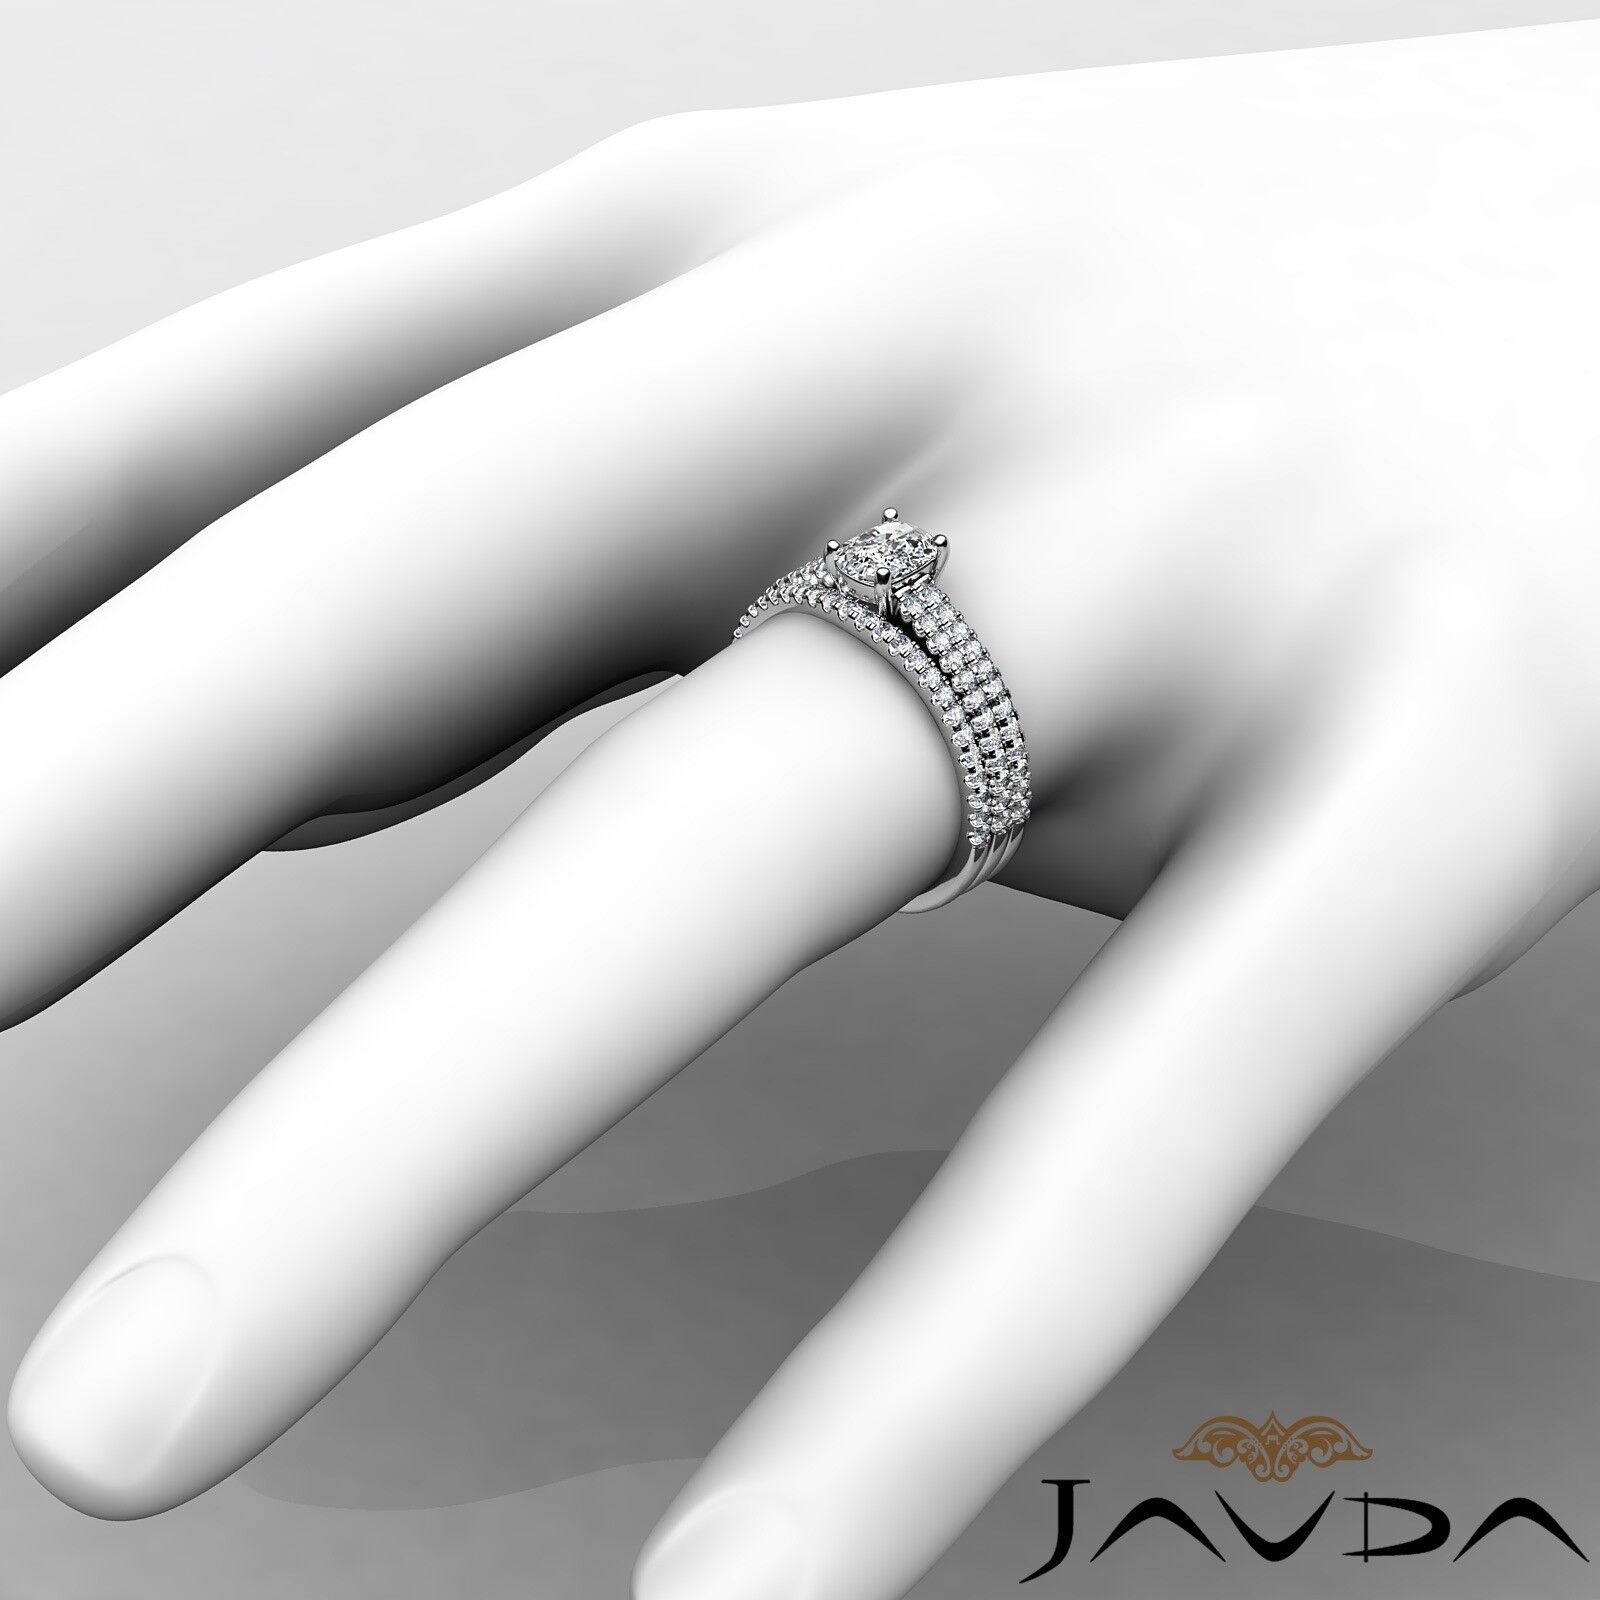 1.54ctw Bridal Scalloped Pave Cushion Diamond Engagement Ring GIA G-SI1 W Gold 4